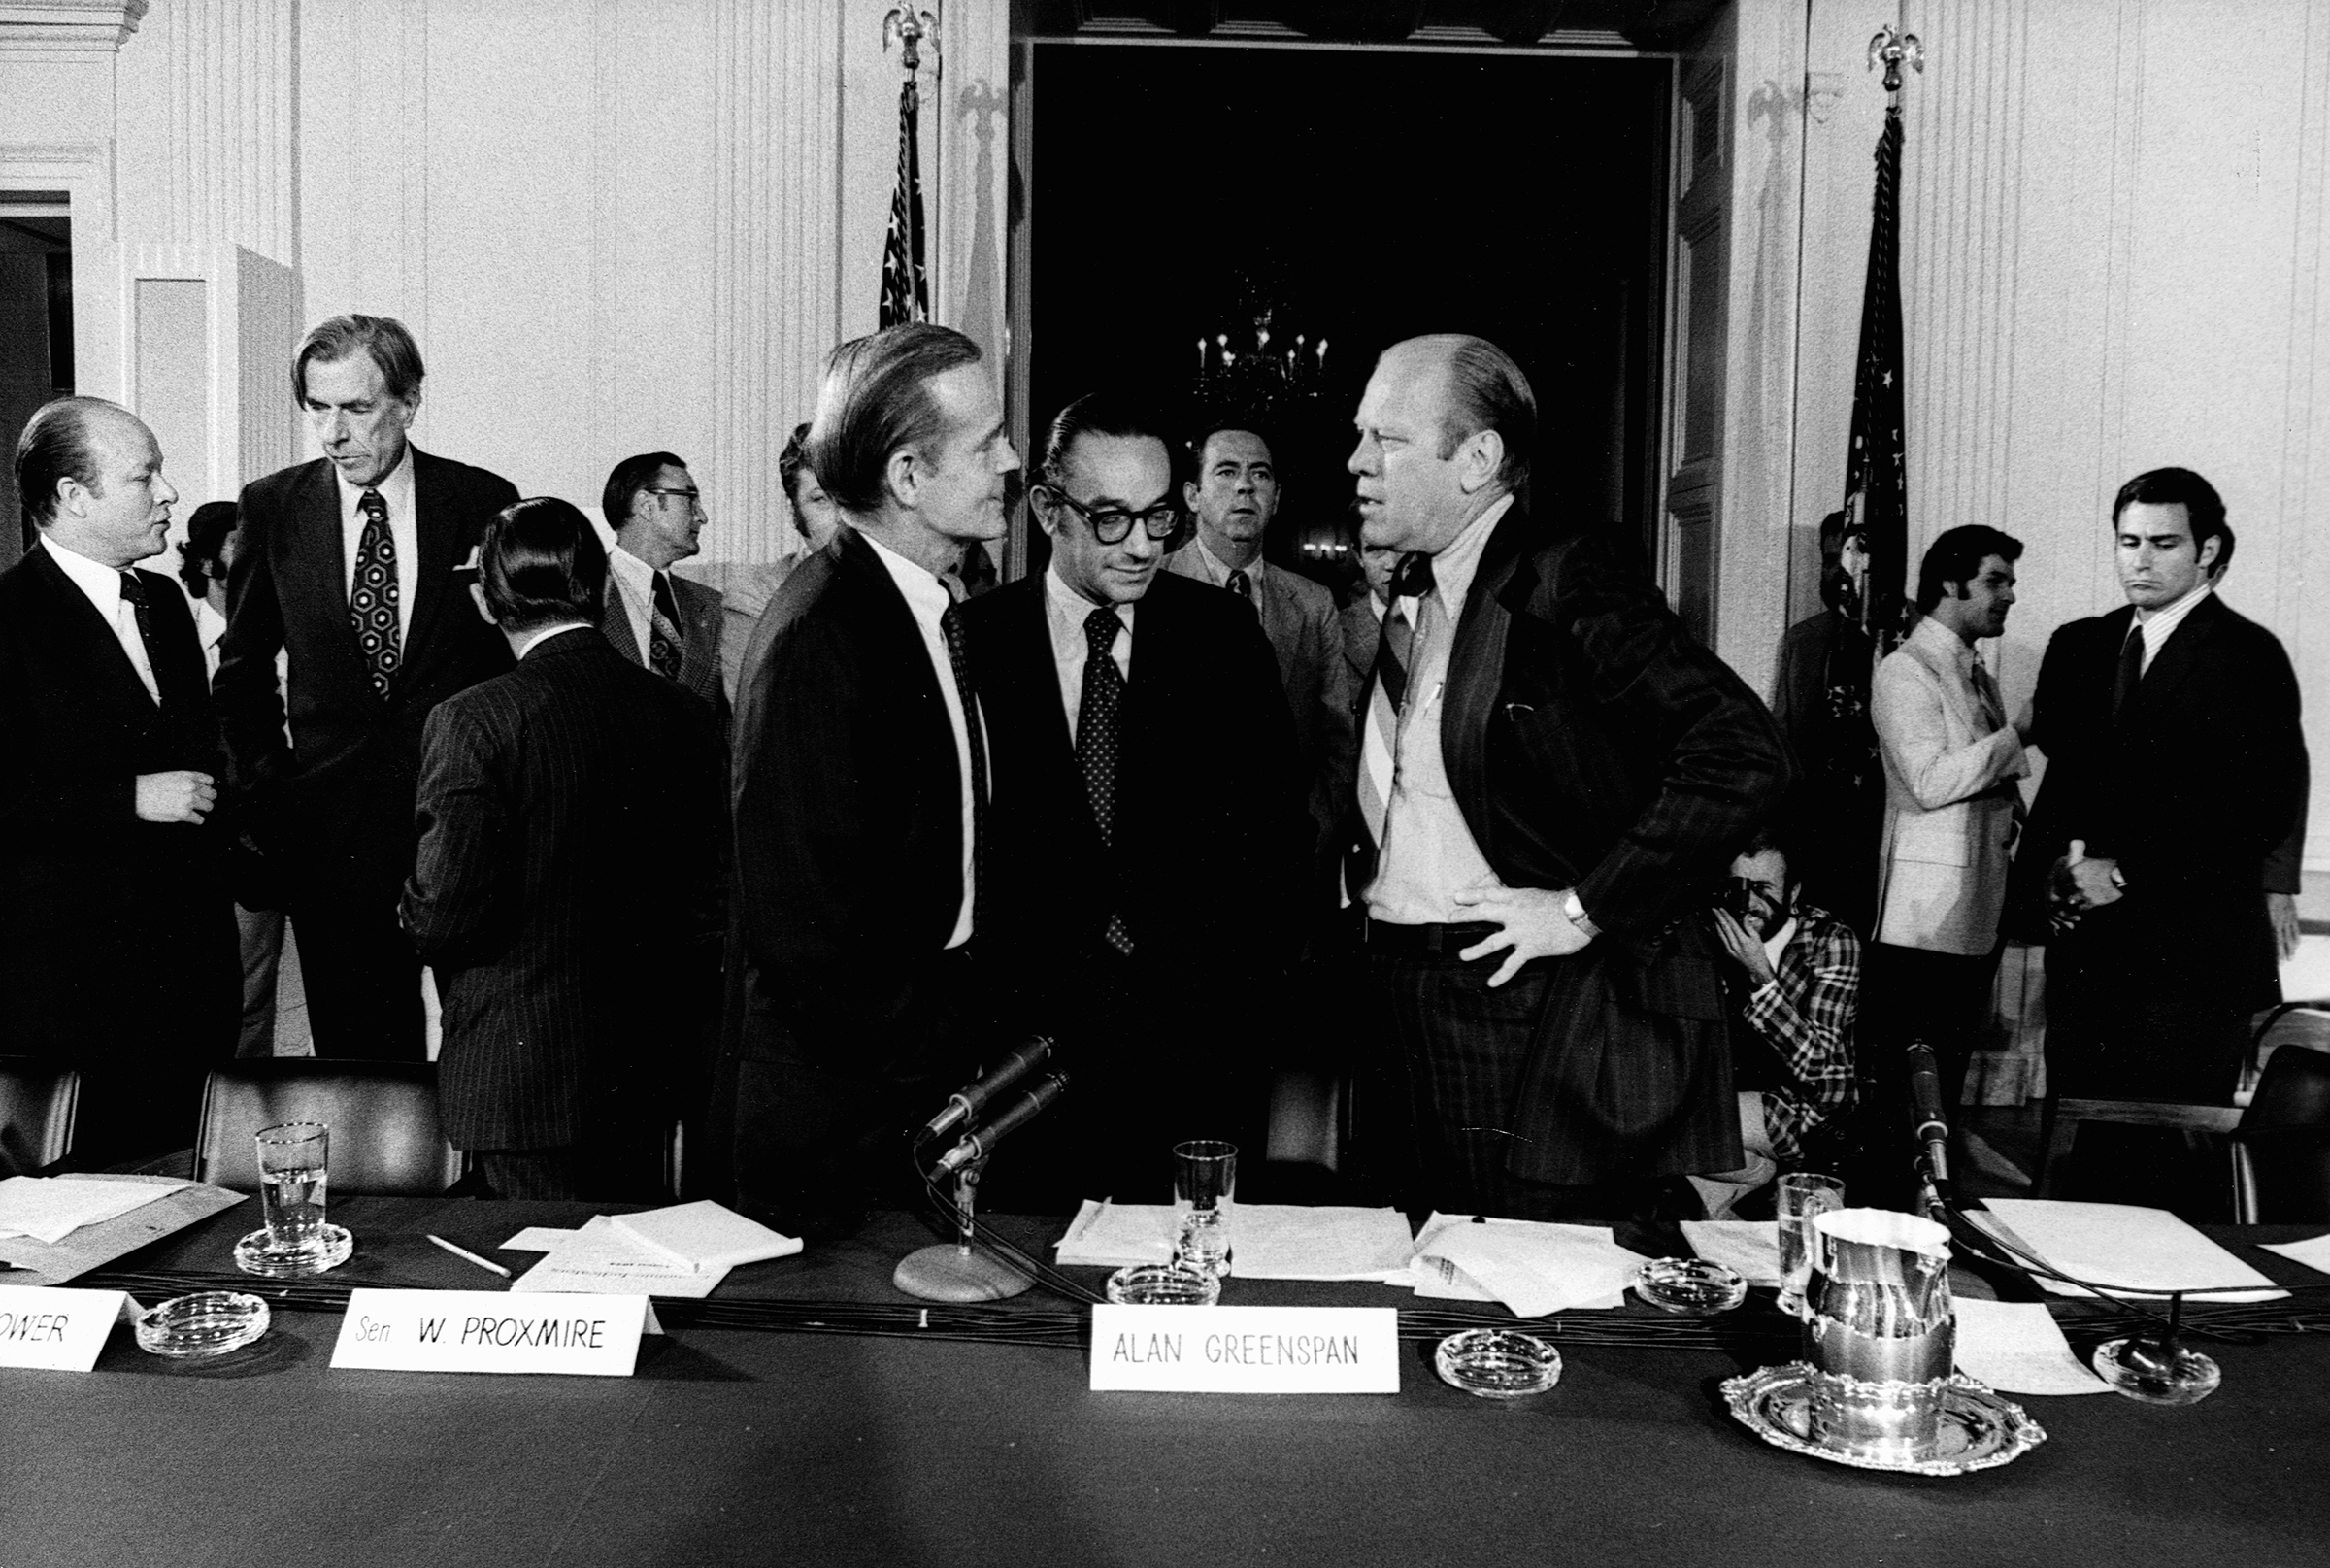 United States President Gerald Ford converses with economists and senators, including Alan Greenspan (center) in a White House conference room on Sept. 5, 1974